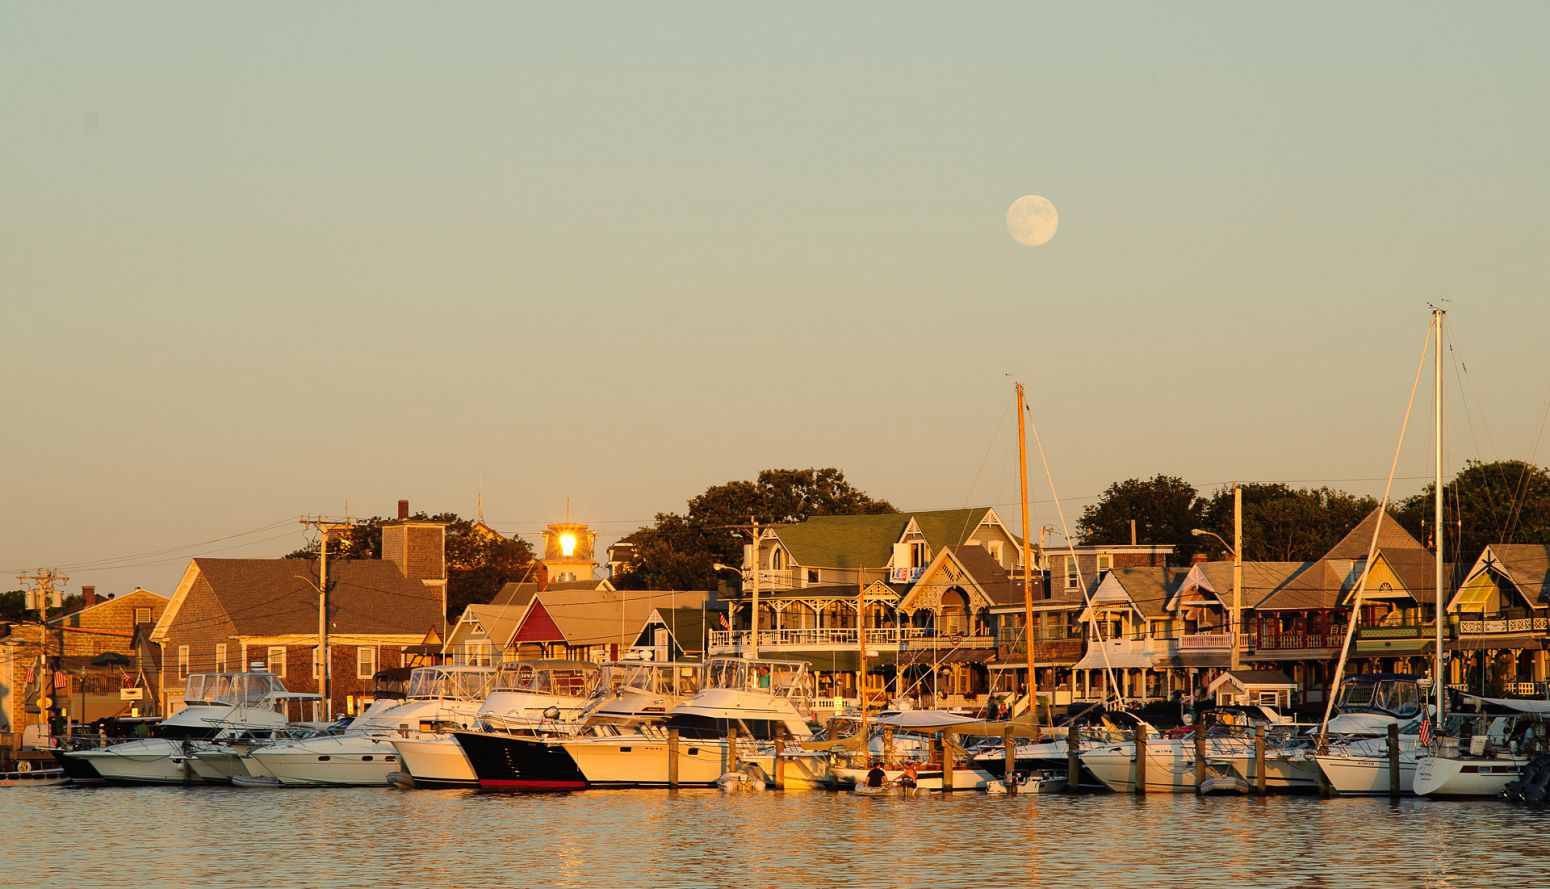 Oak Bluffs Harbor, Martha's Vineyard, Massachusetts, USA